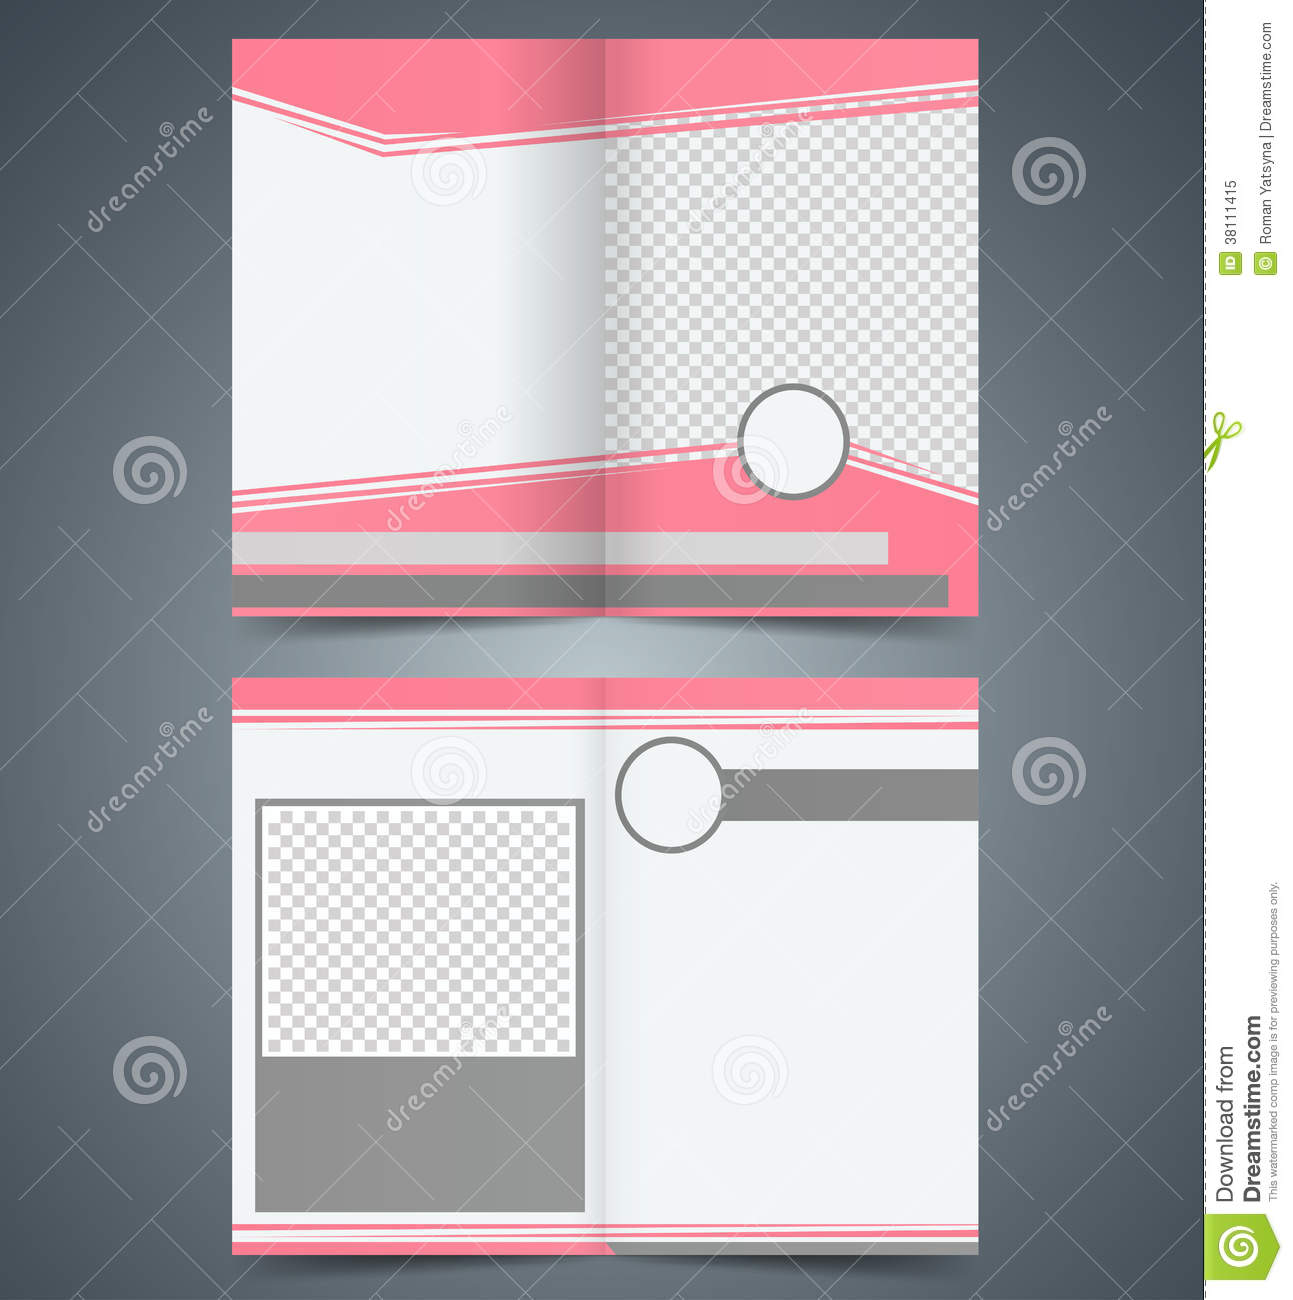 free brochure design template - empty bifold brochure template design with pink co stock